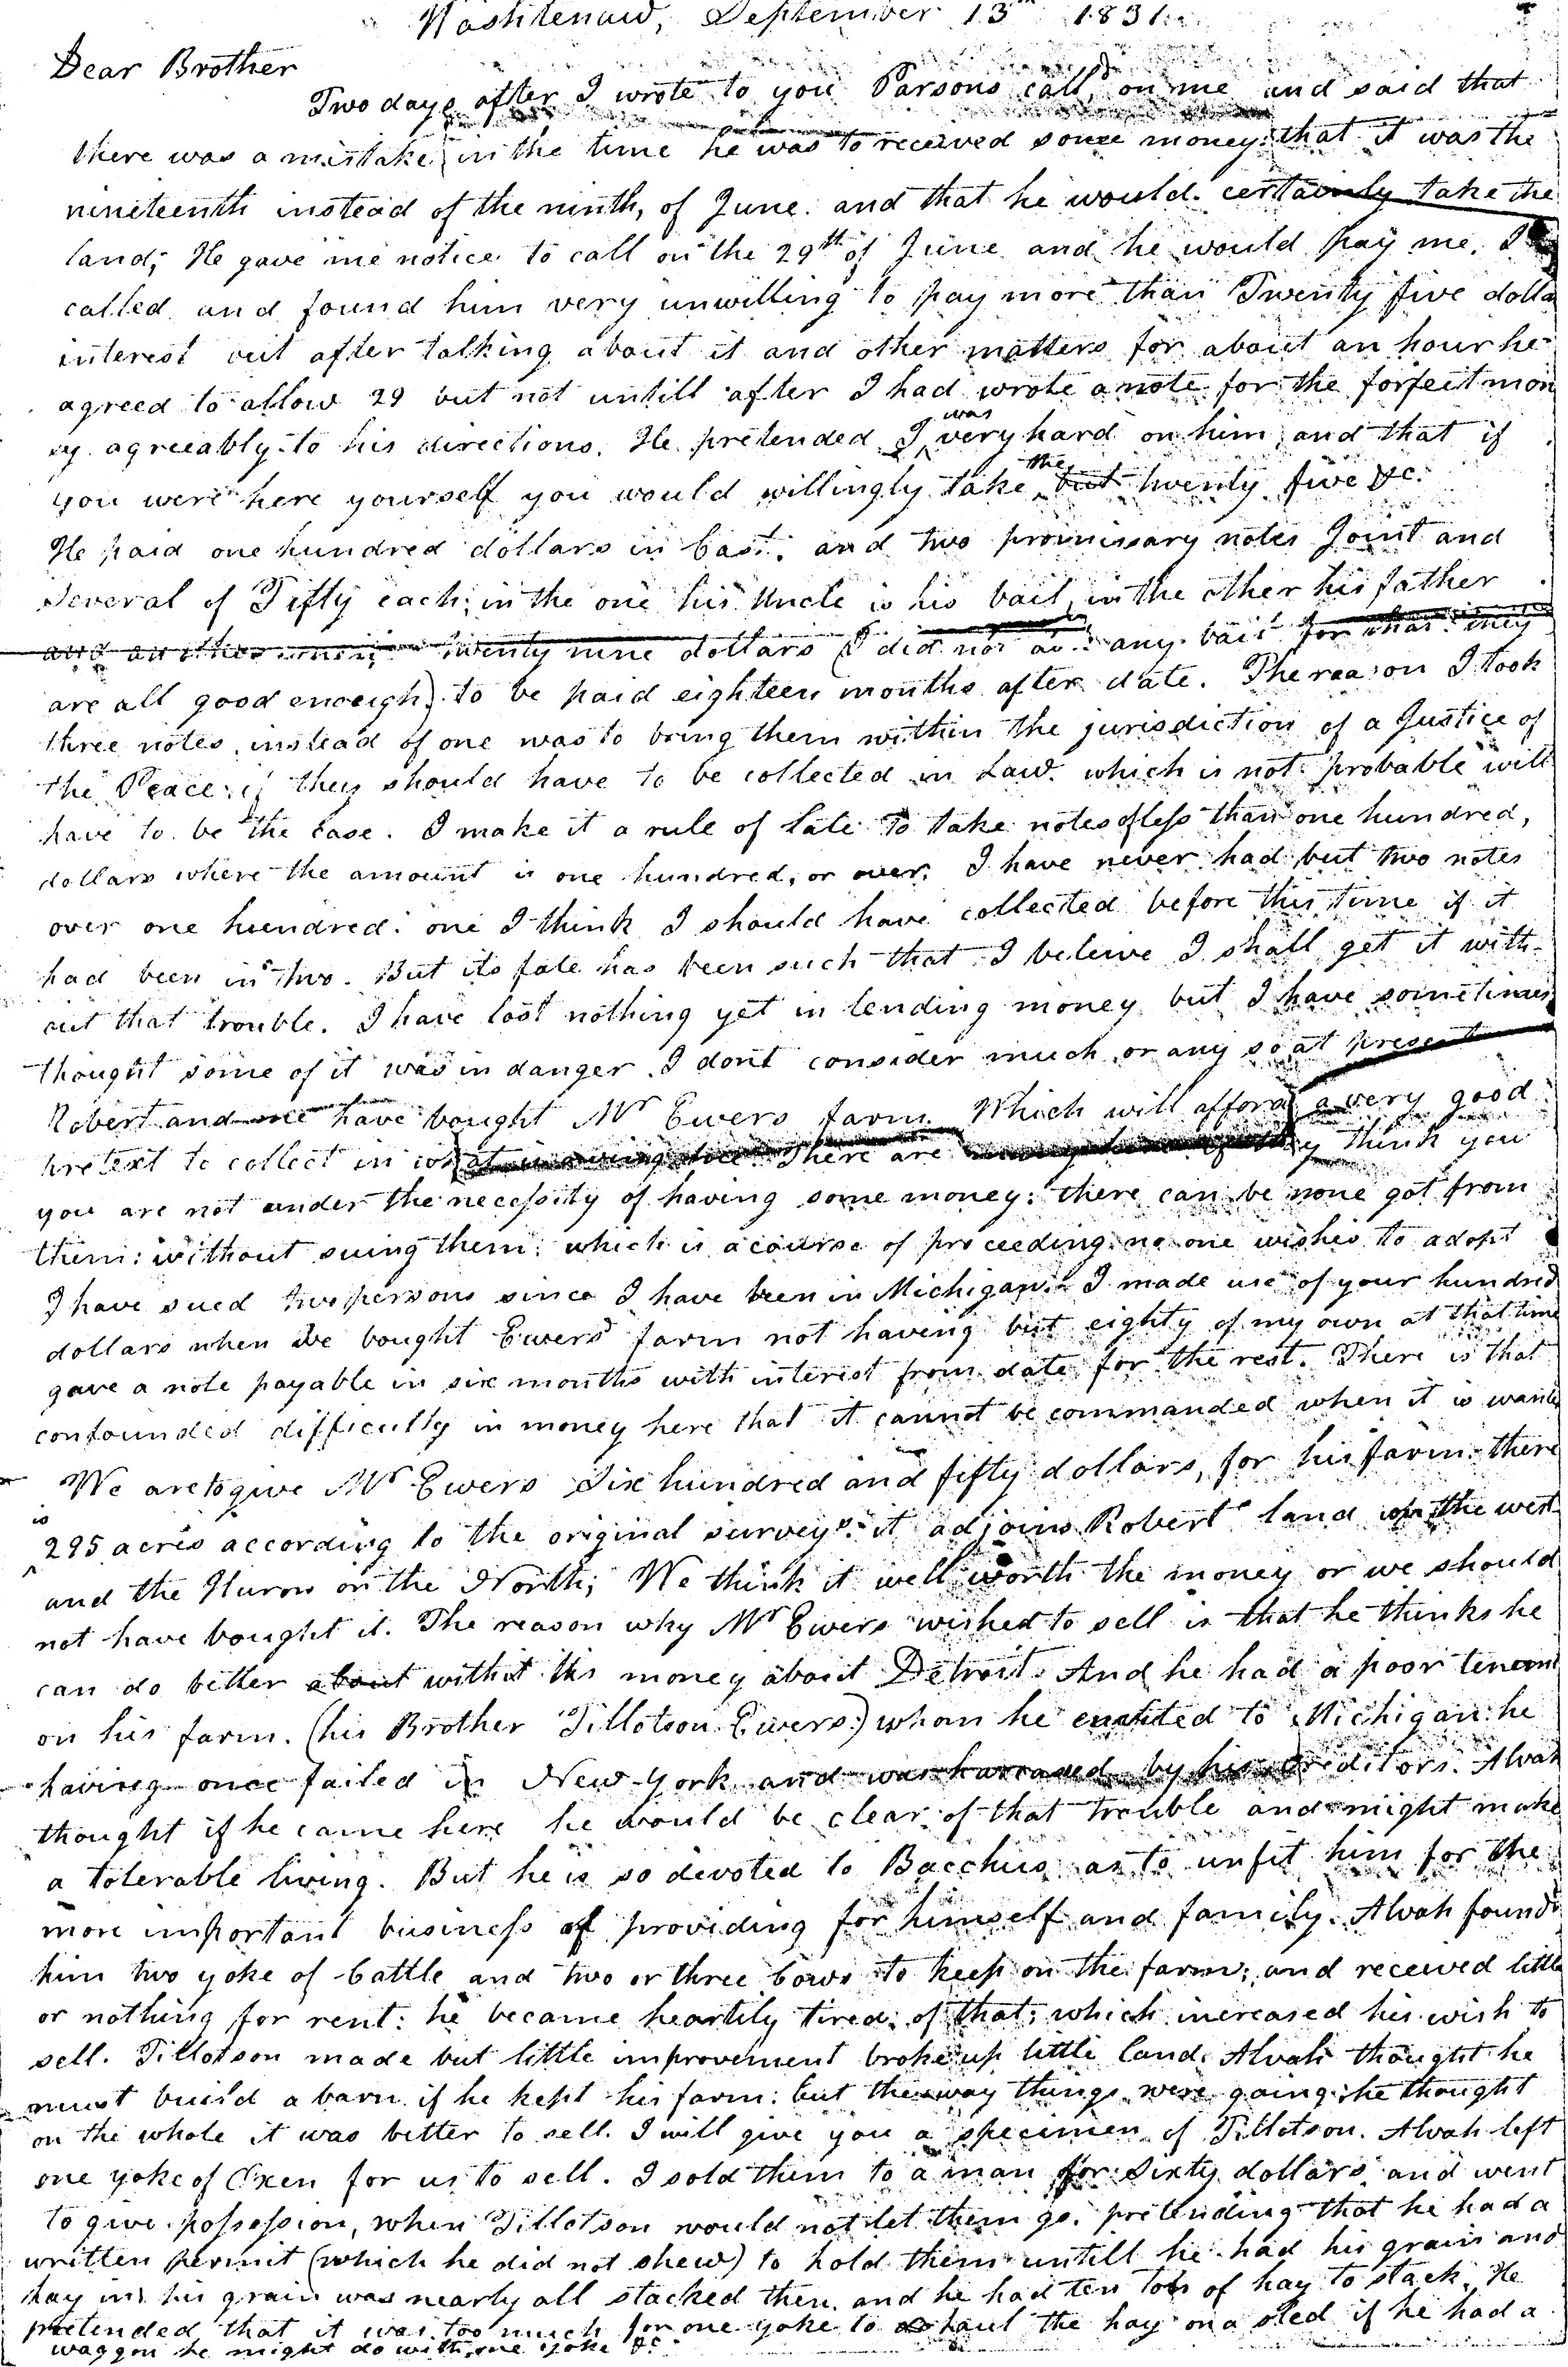 Letter From John Geddes to William Geddes, September 13, 1831 image